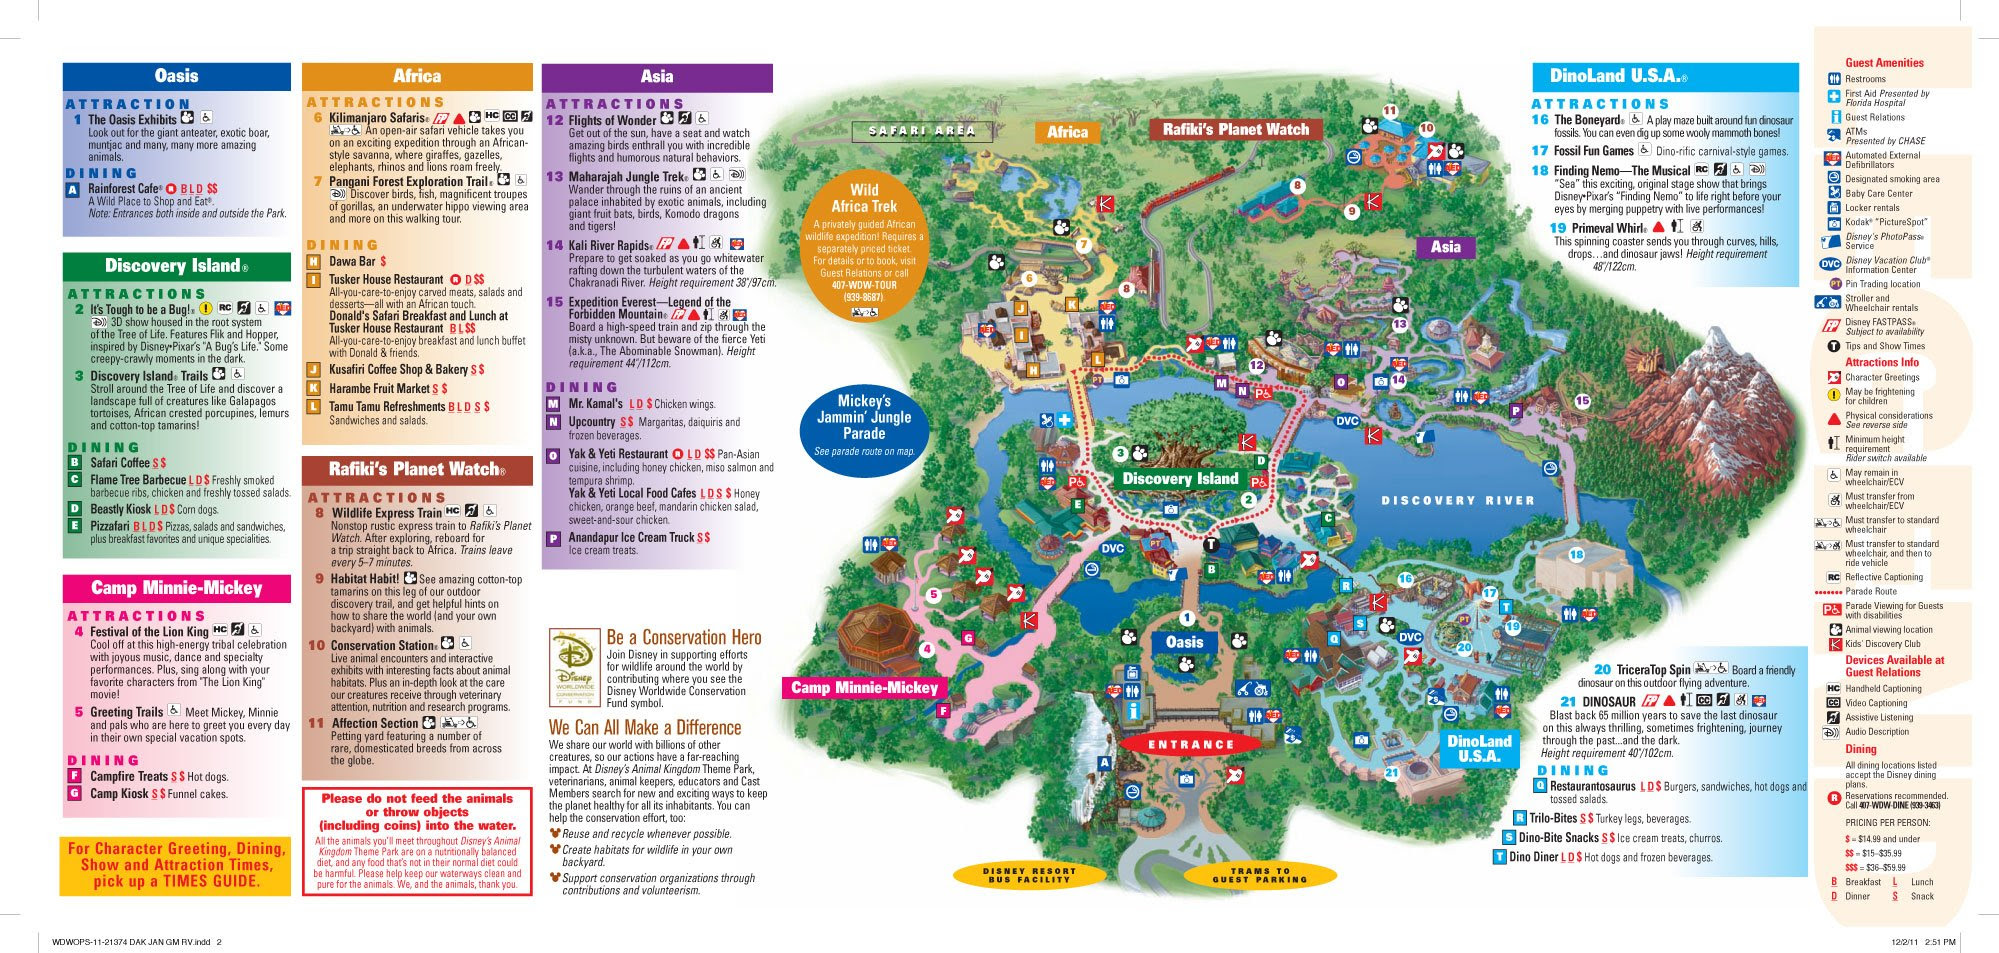 Disney's Animal Kingdom map Theme Park map